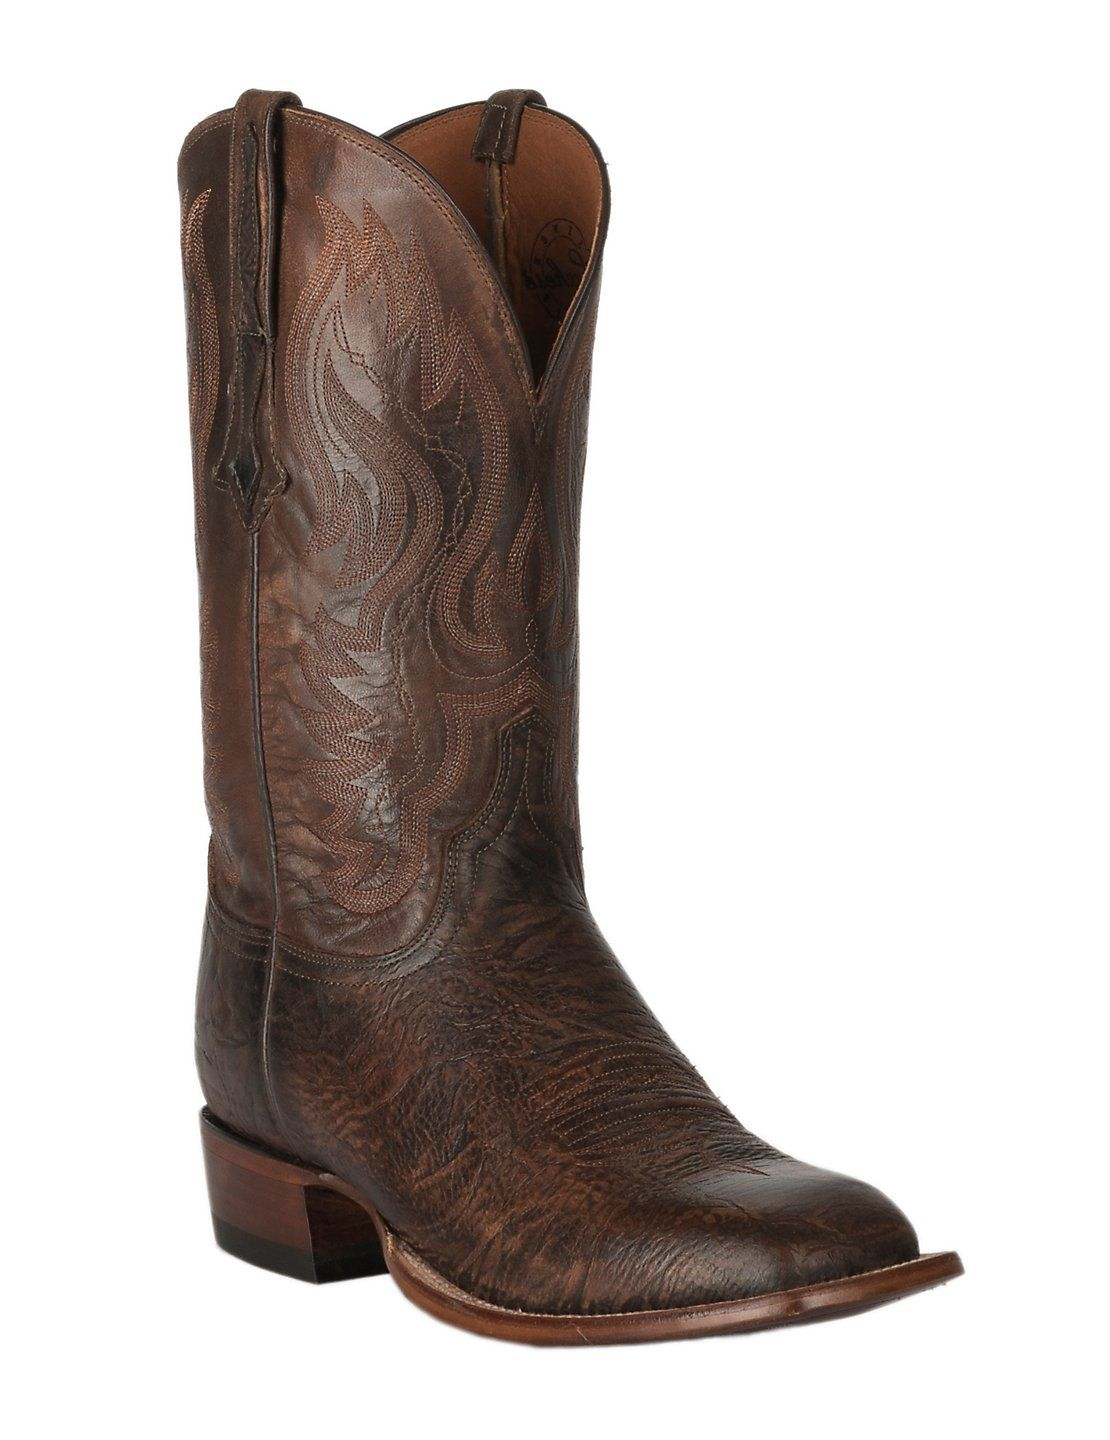 4b55b5a39bf Lucchese 1883 Men's Cognac Bison with Pearwood Upper Square Toe ...